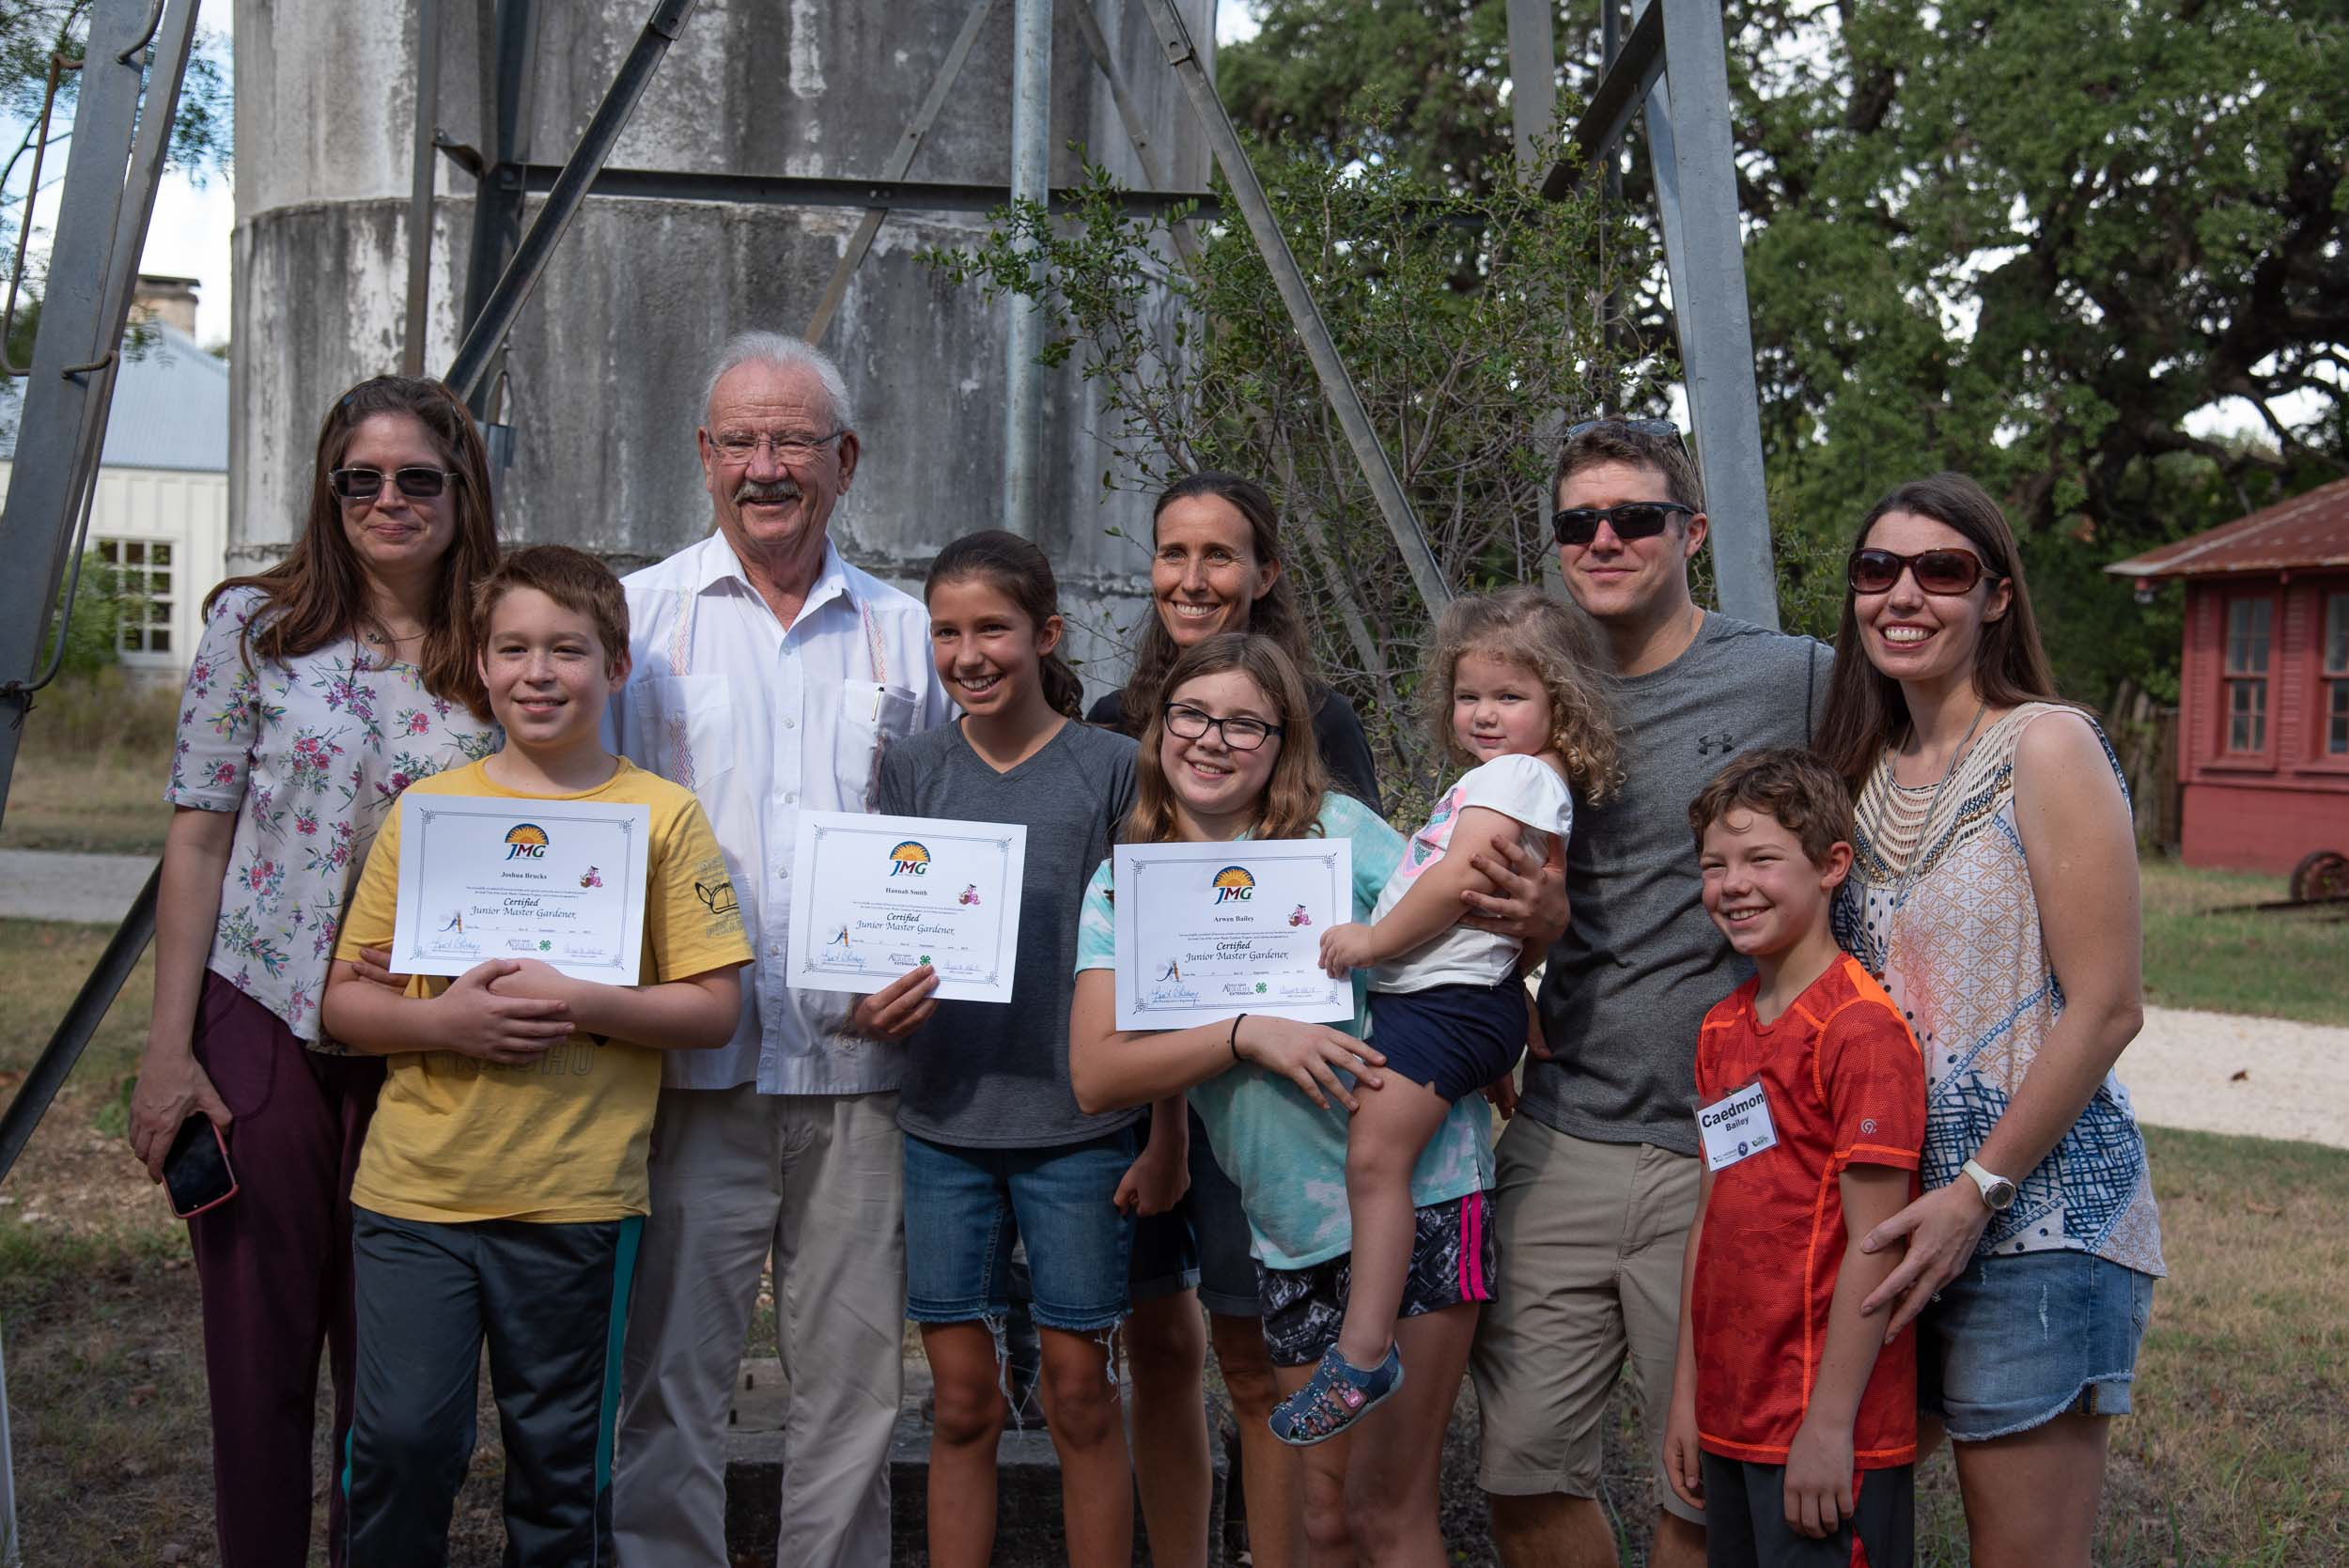 Former San Antonio Mayor and park namesake, Phil Hardberger (third from the left) stands with the three Junior Master Gardeners and their families.